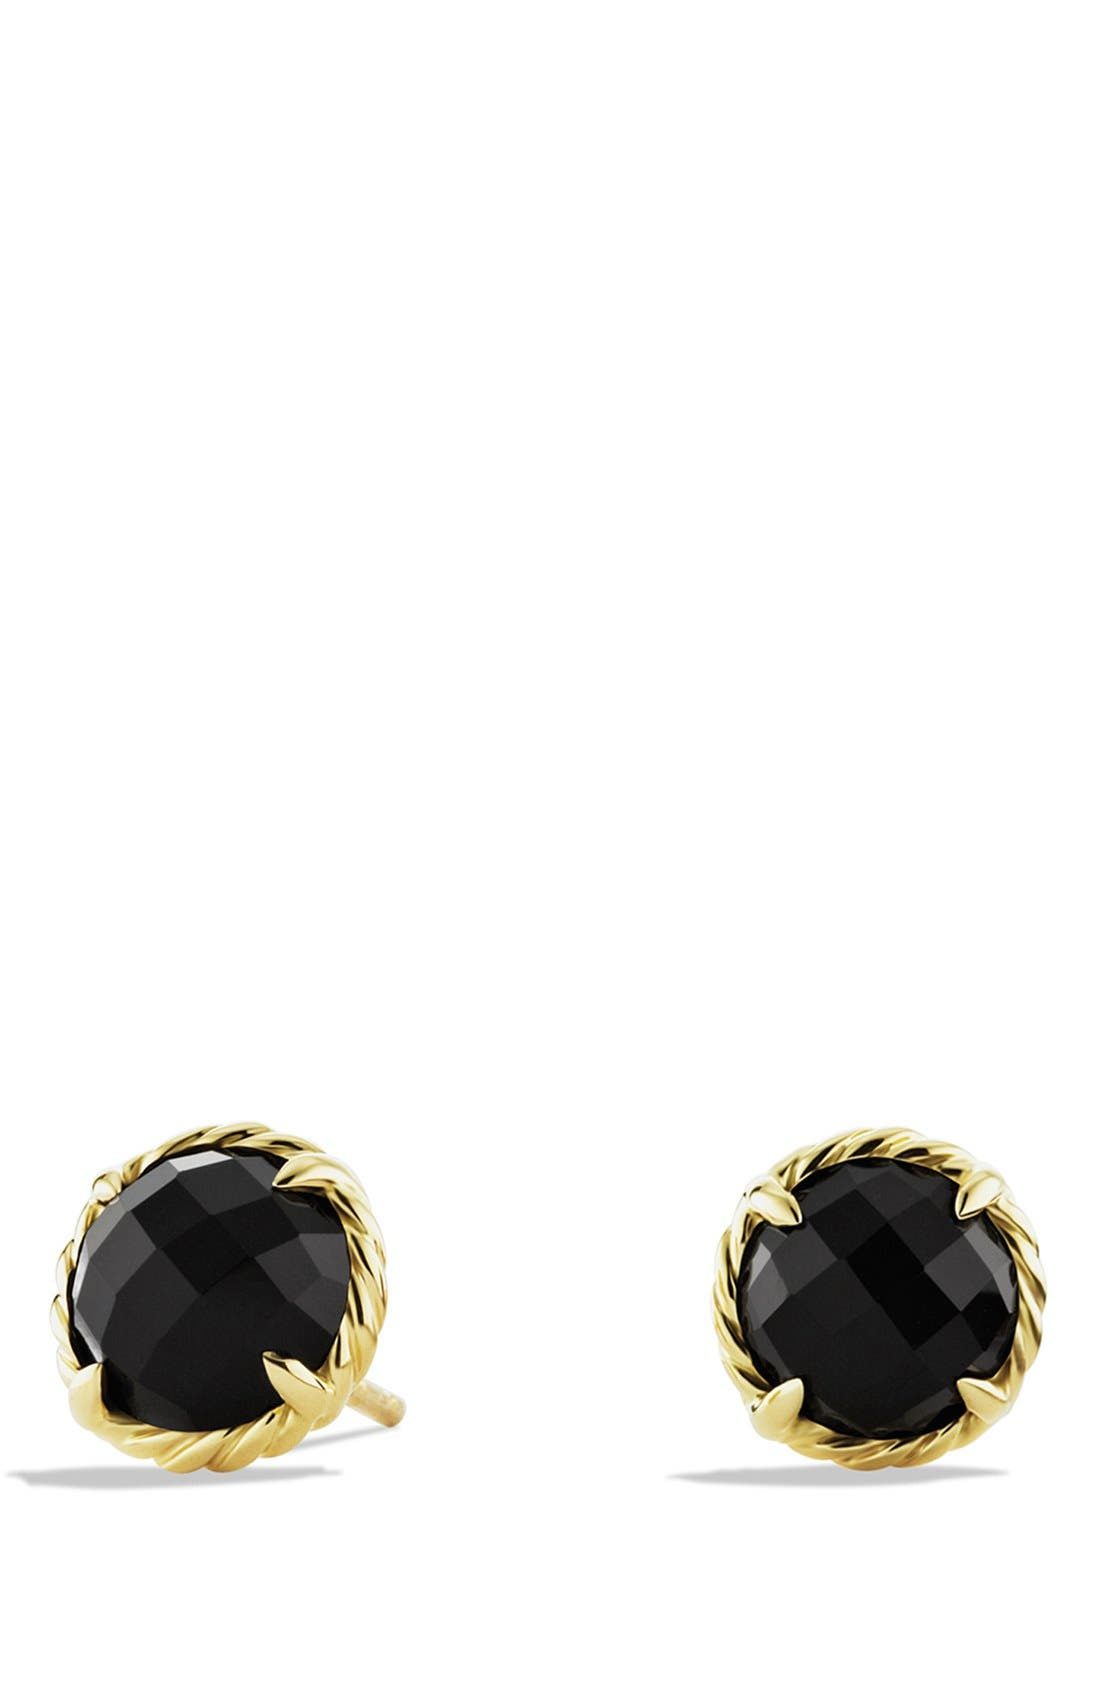 Main Image - David Yurman 'Châtelaine' Earrings